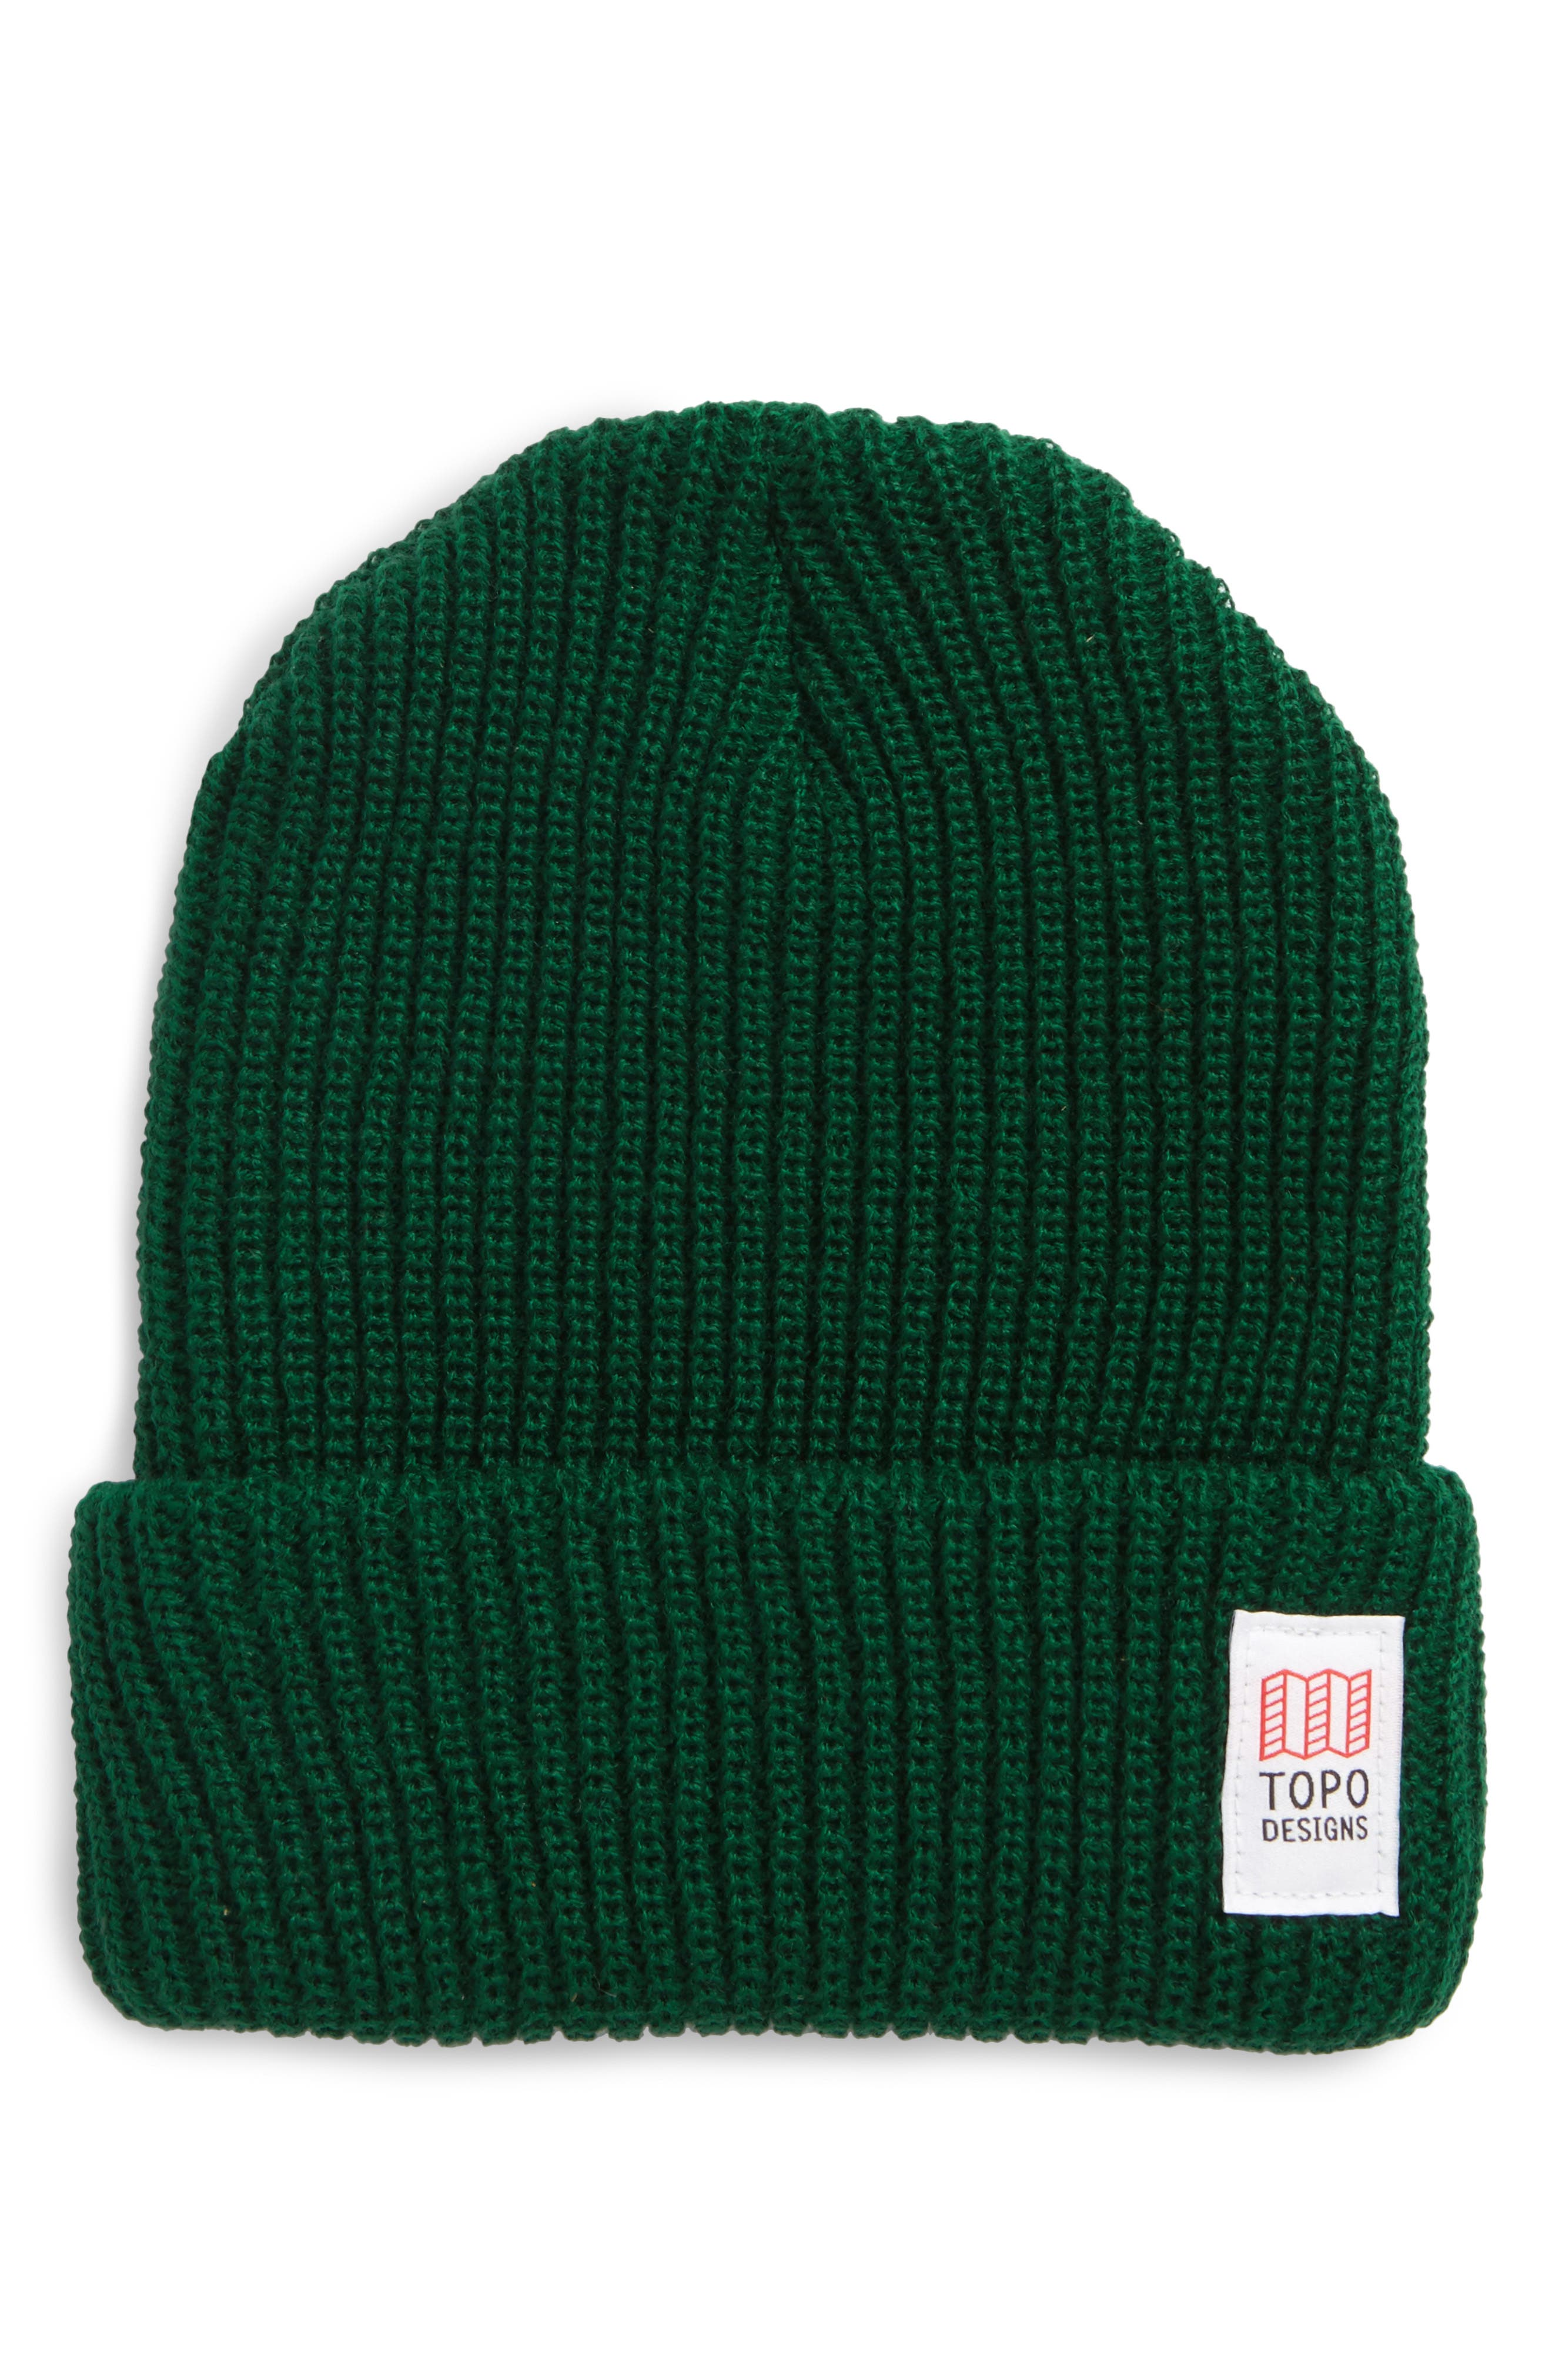 Topo Designers Heavyweight Knit Cap,                         Main,                         color, Forest